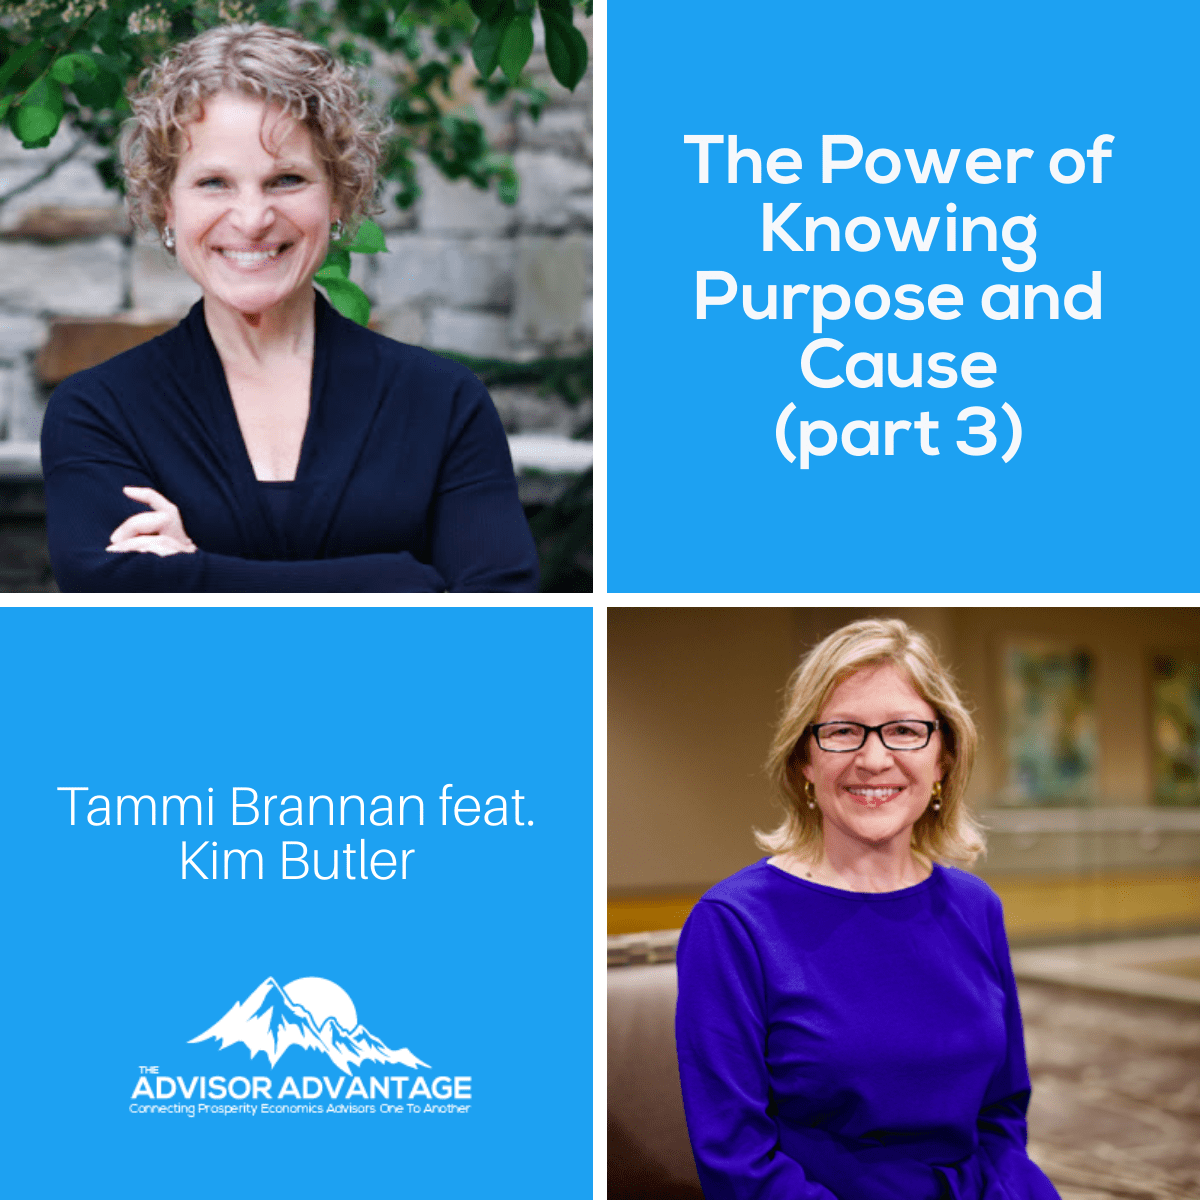 The Power of Knowing Purpose and Cause with Kim Butler (part 3) – Episode 221